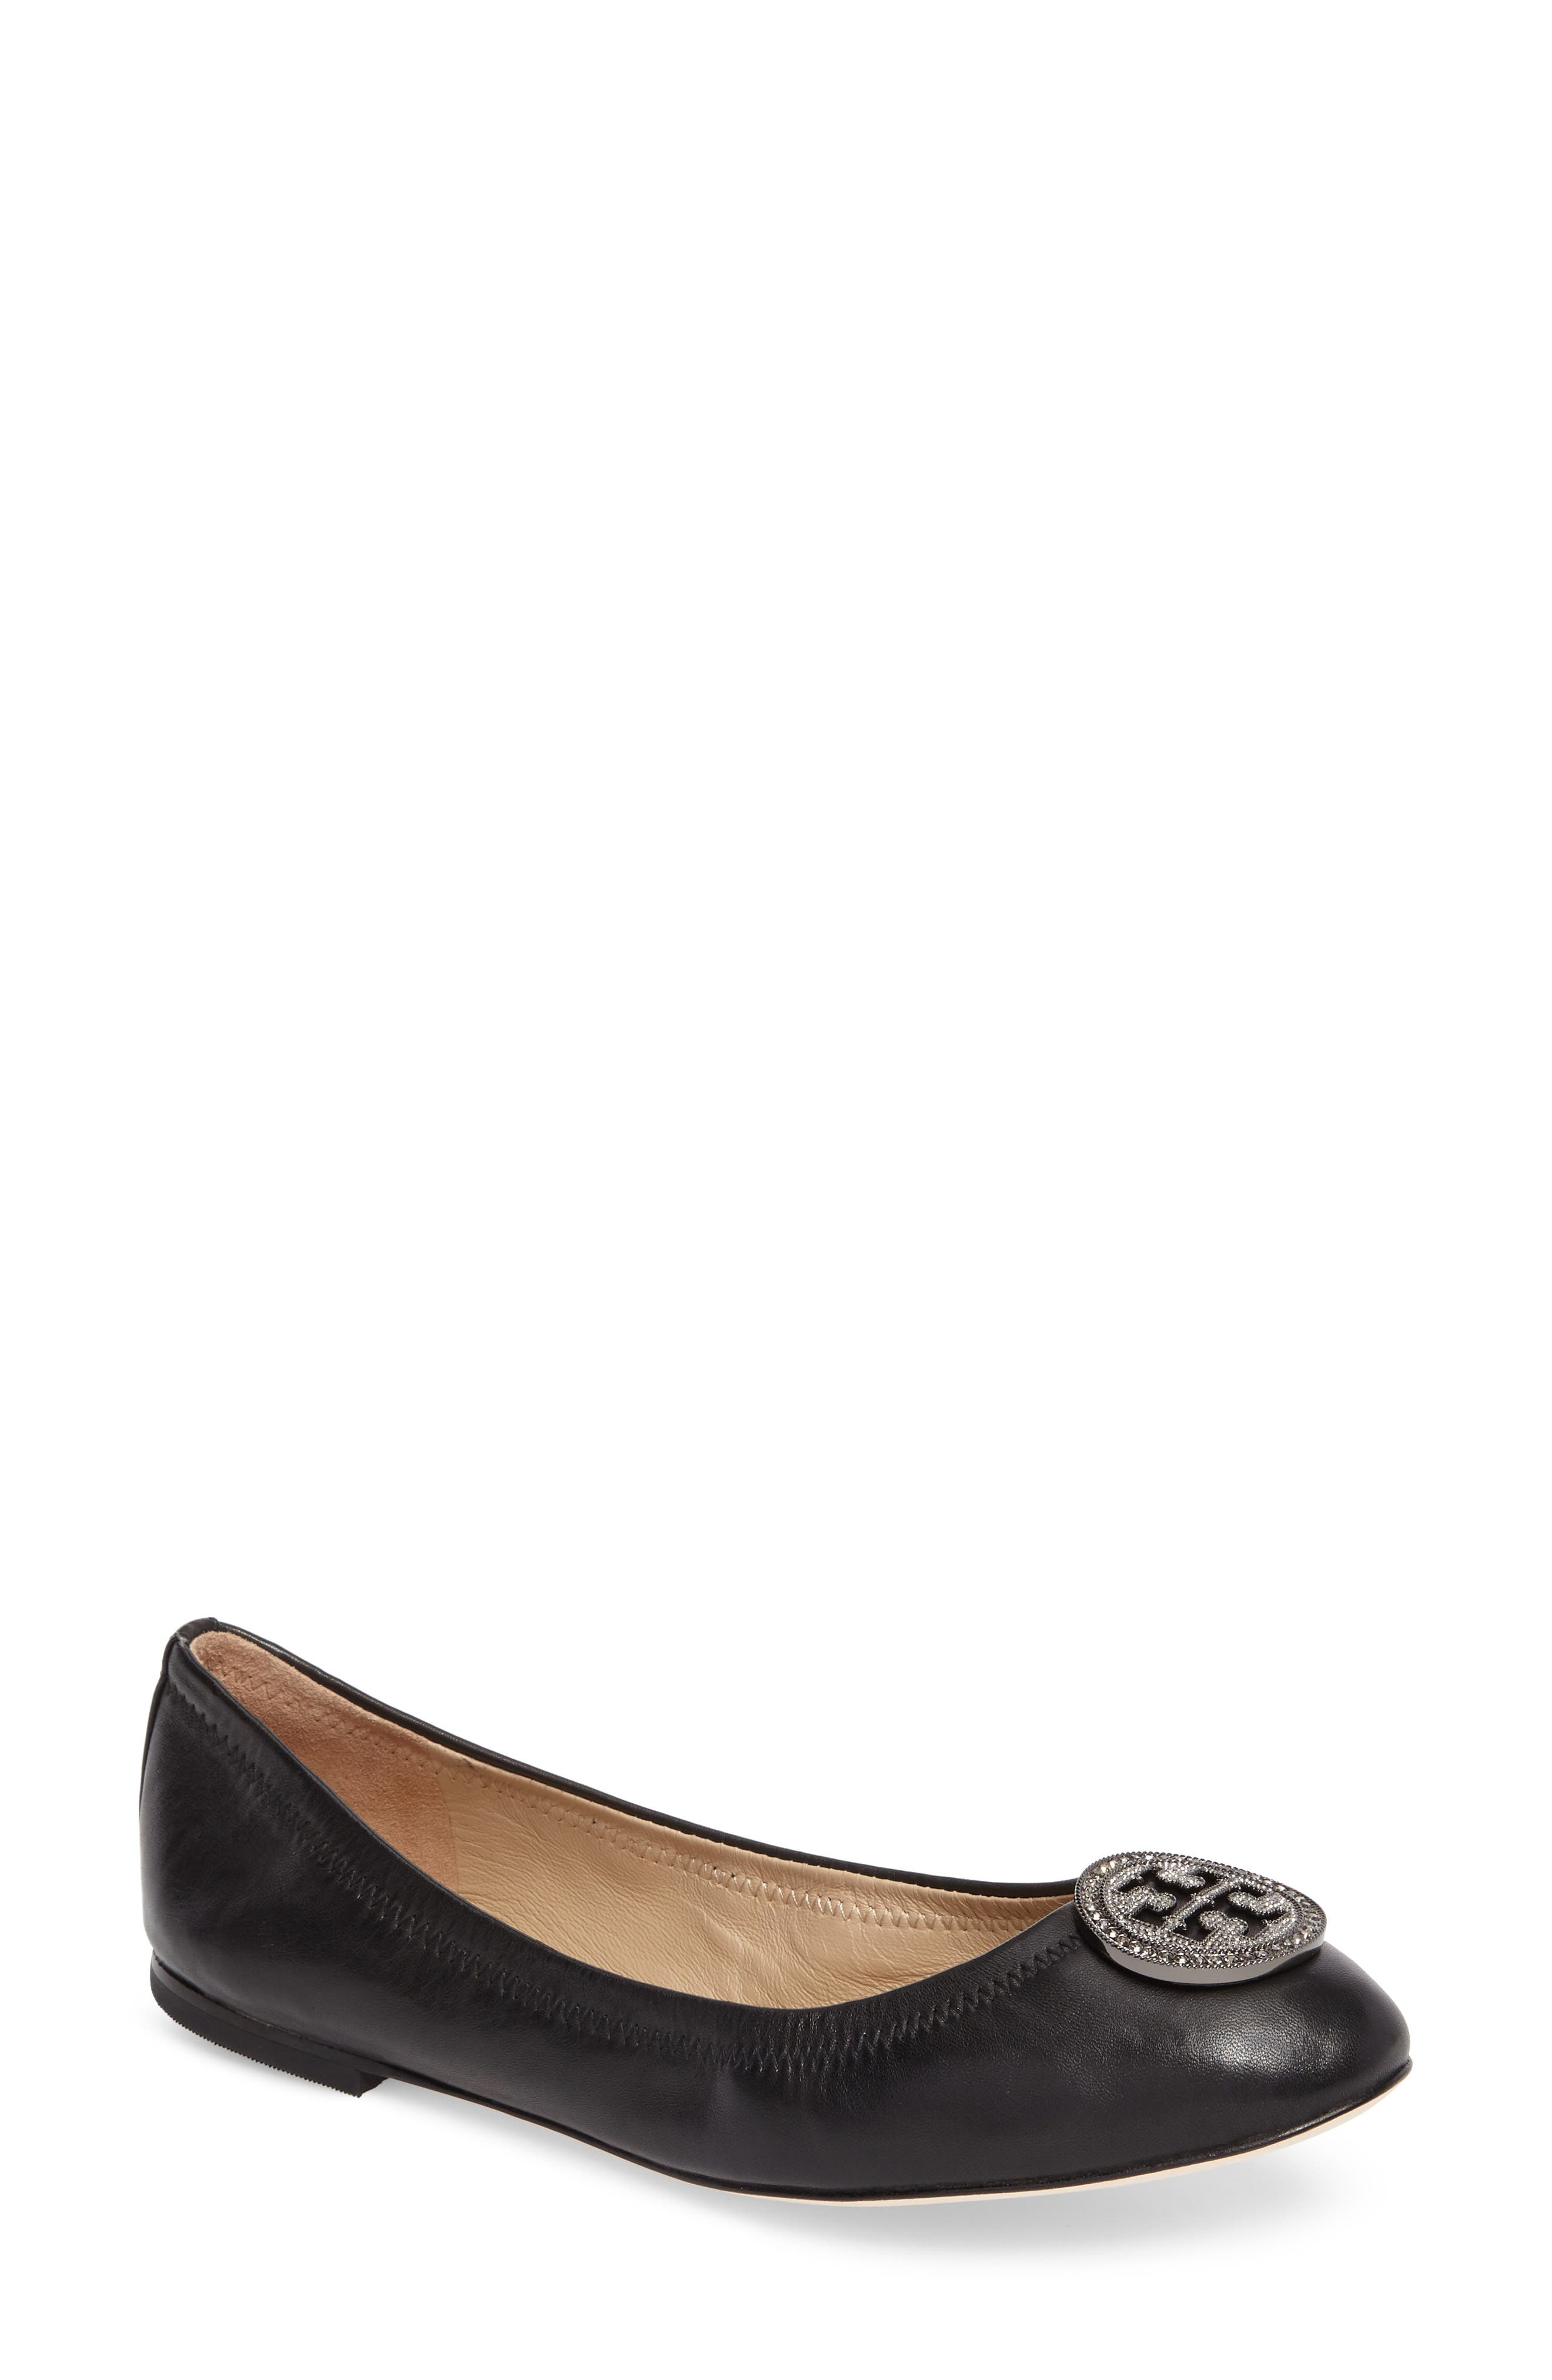 Alternate Image 1 Selected - Tory Burch Liana Ballet Flat (Women)